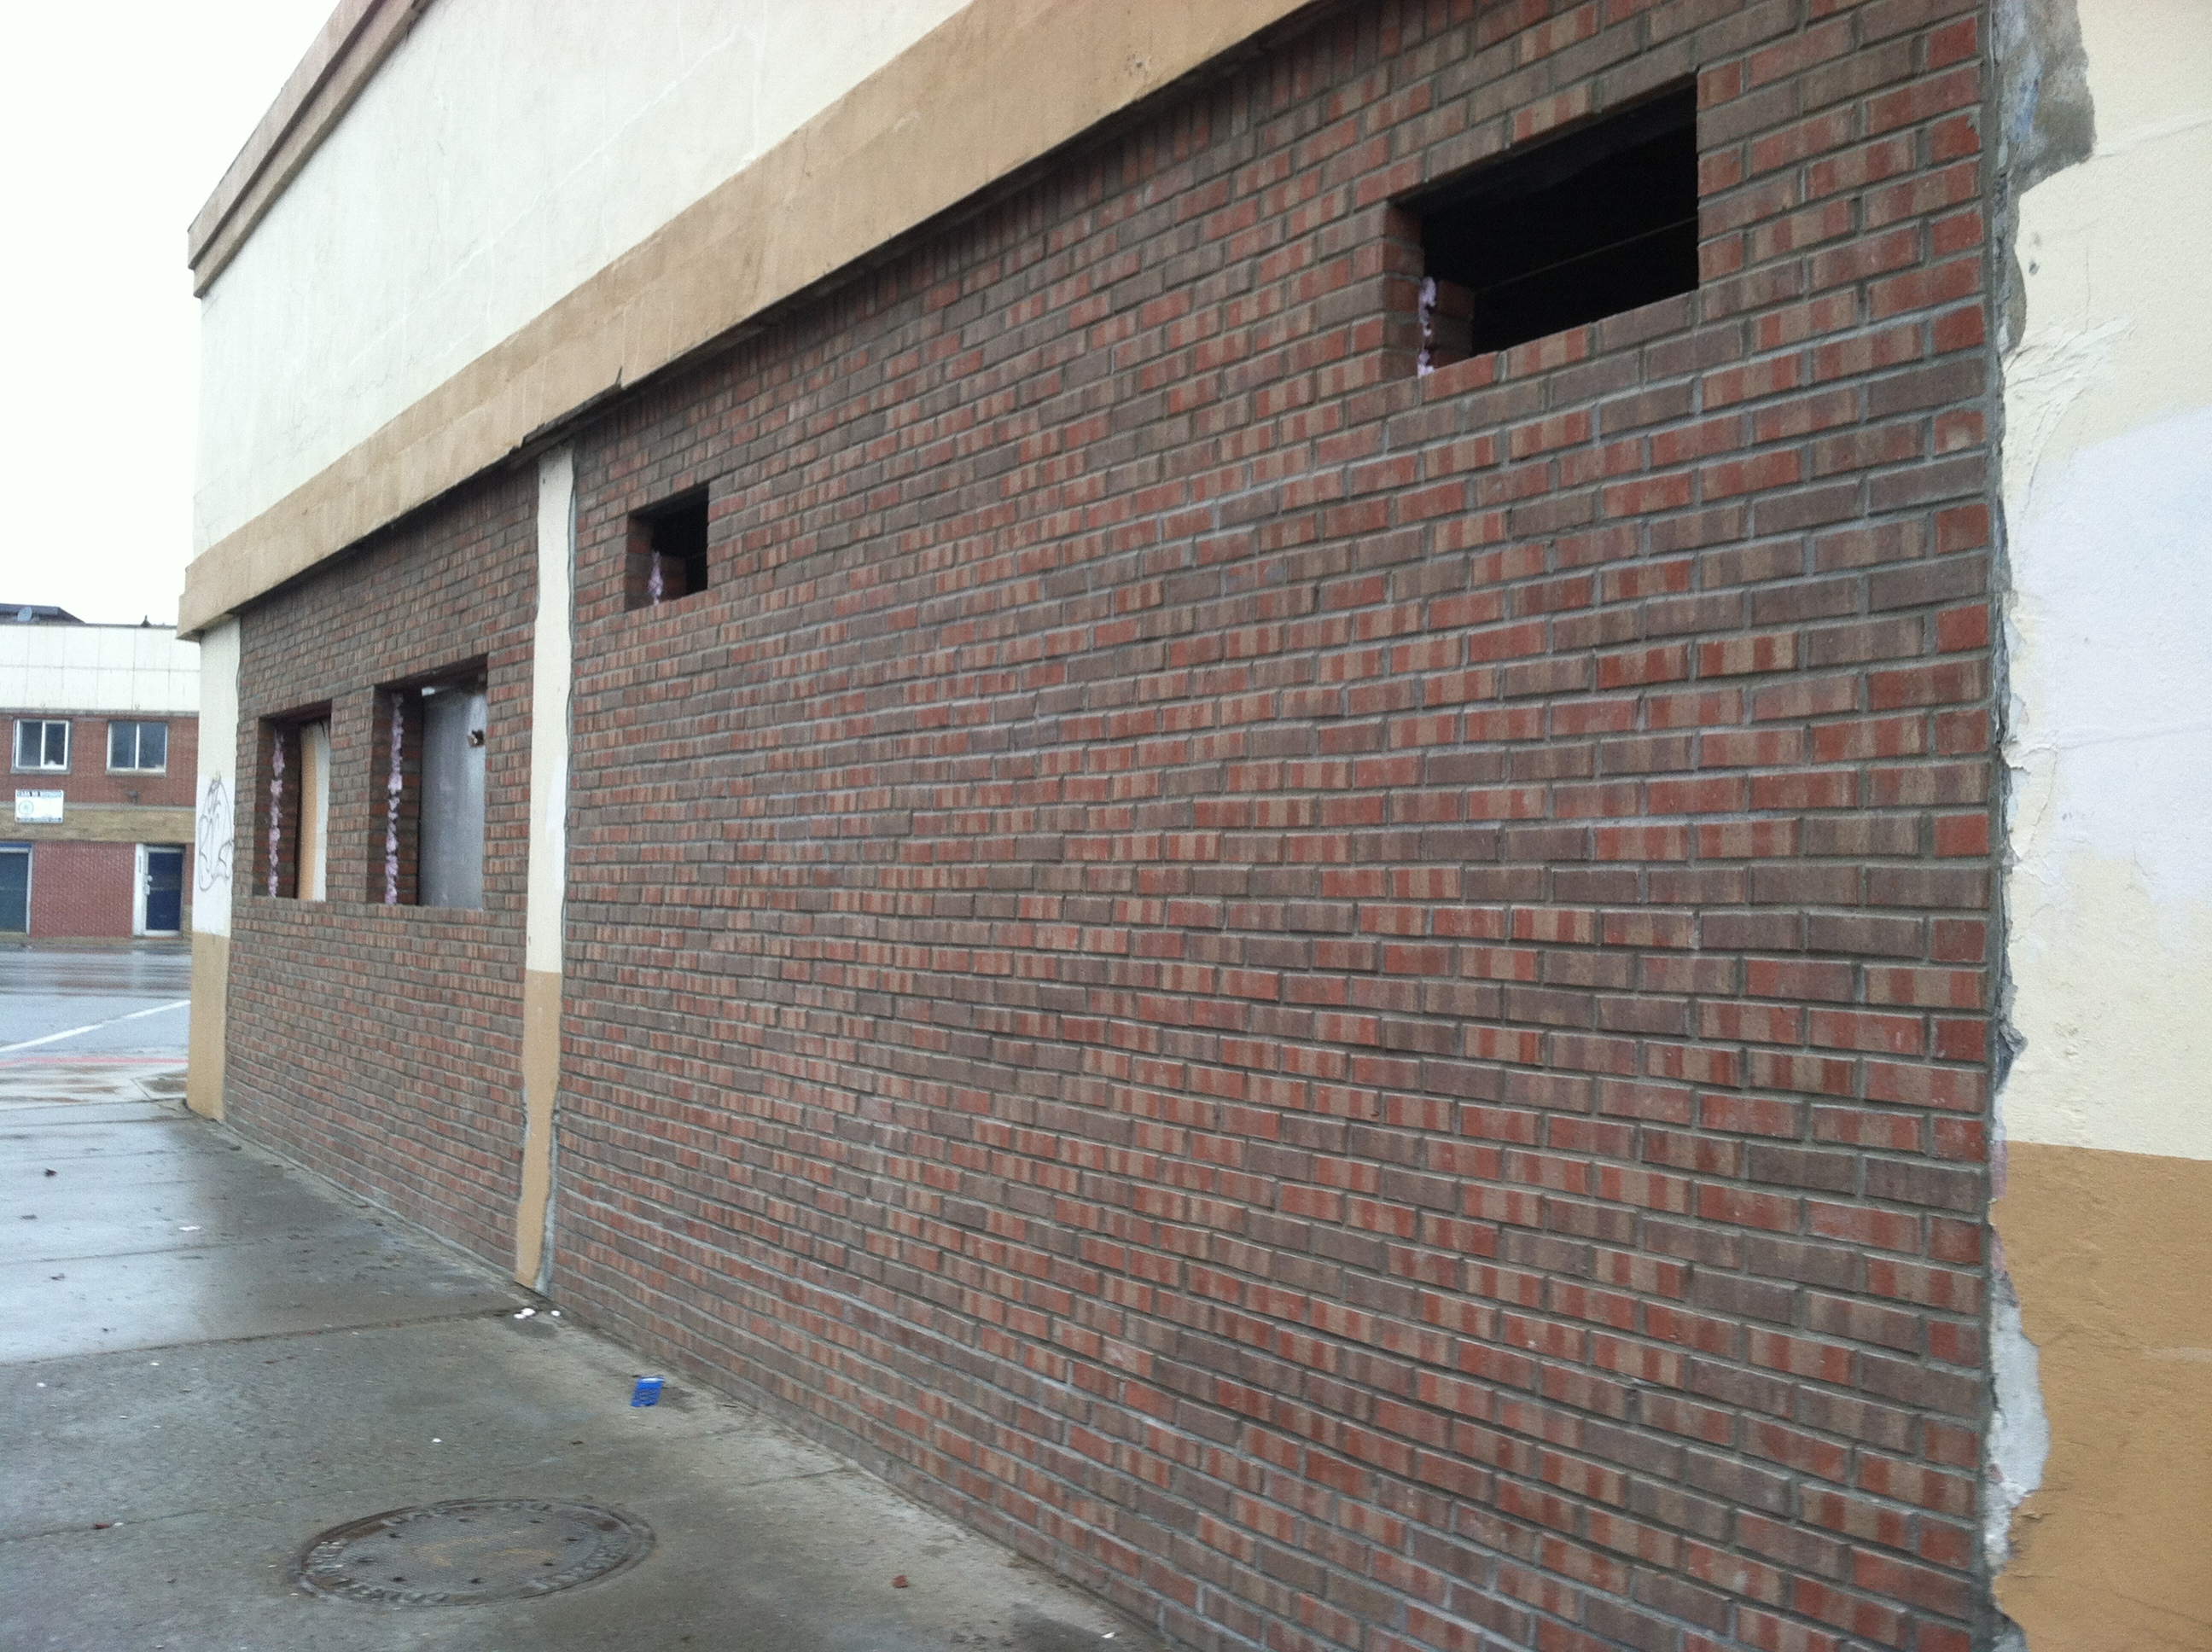 The brick facade at La Noria was recently completed. Renovations continue inside.